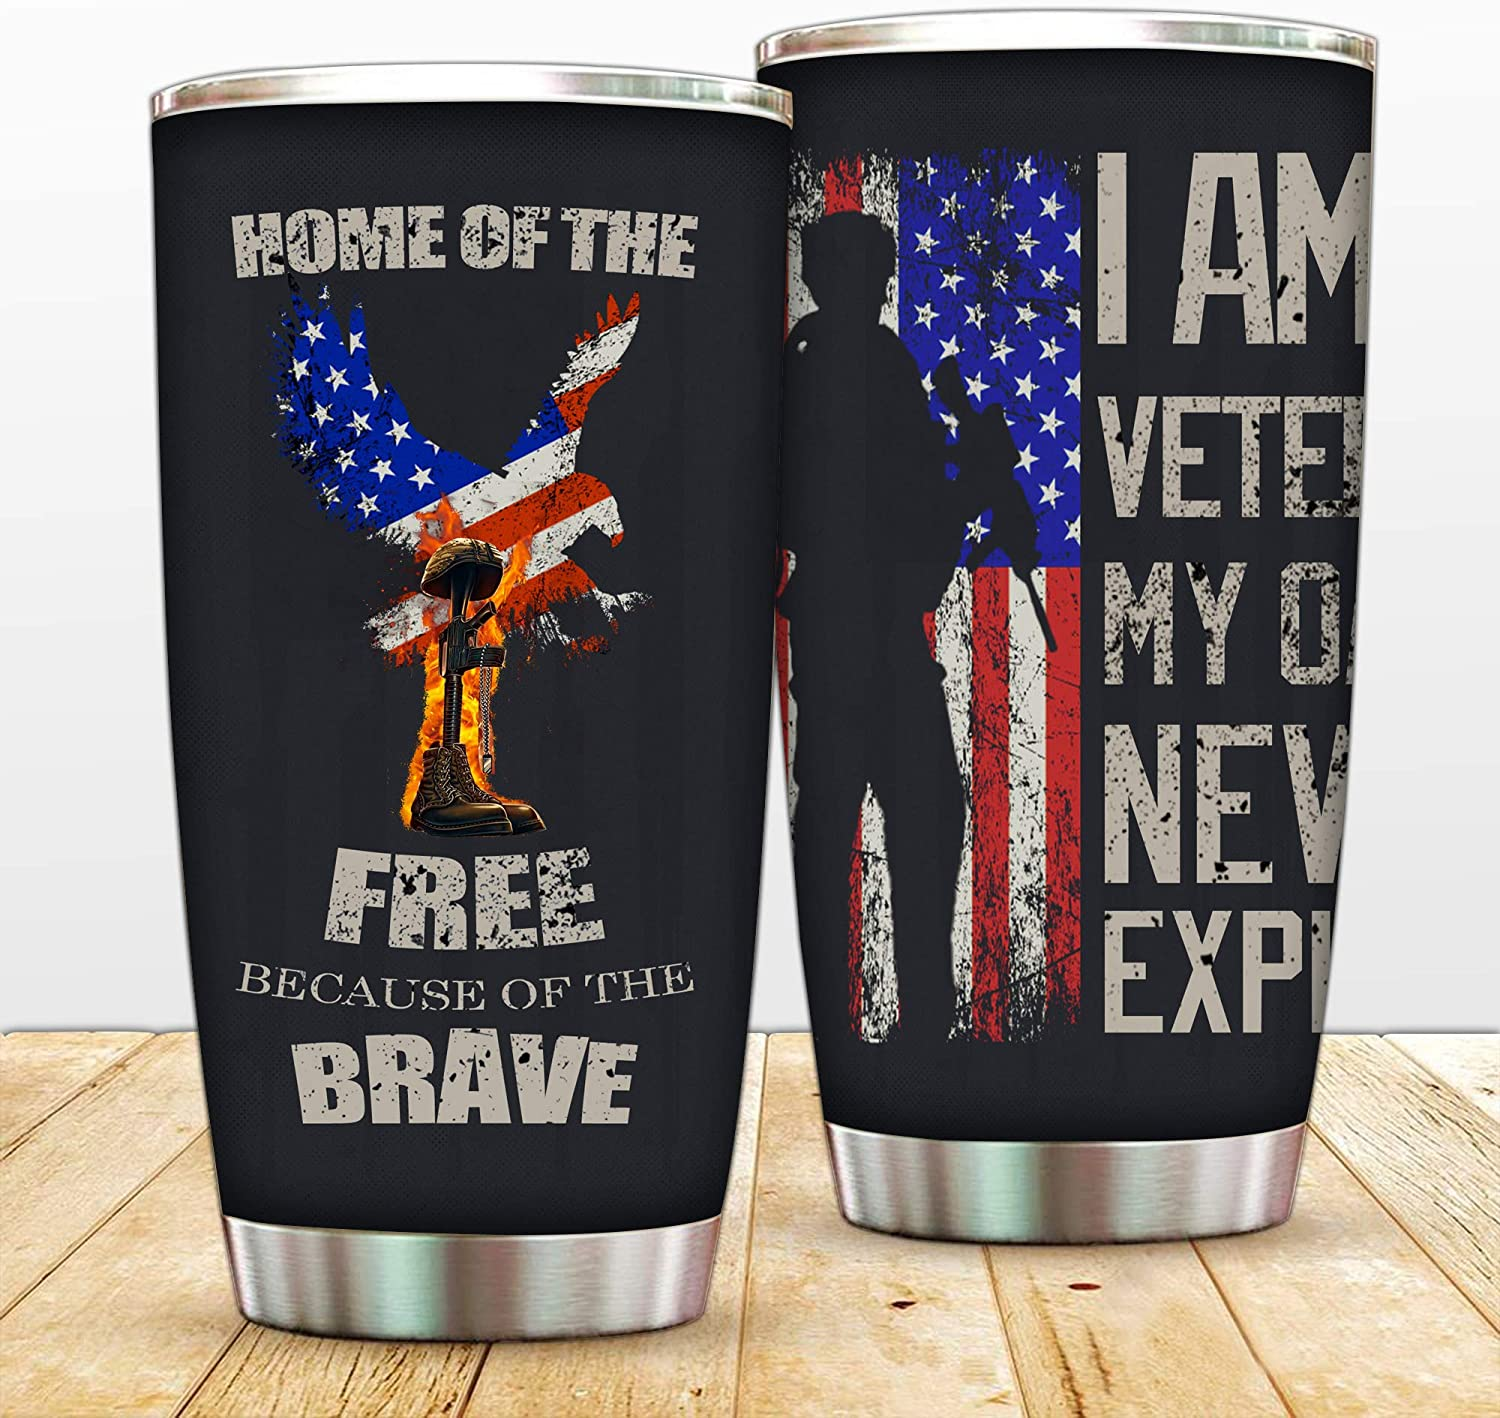 20 oz Military Veterans Tumbler Double Wall Vacuum Insulated Travel Cup Stainless Steel North American Bald Eagle Coffee Travel Mug With Lids Straws,American Flag Water Bottle